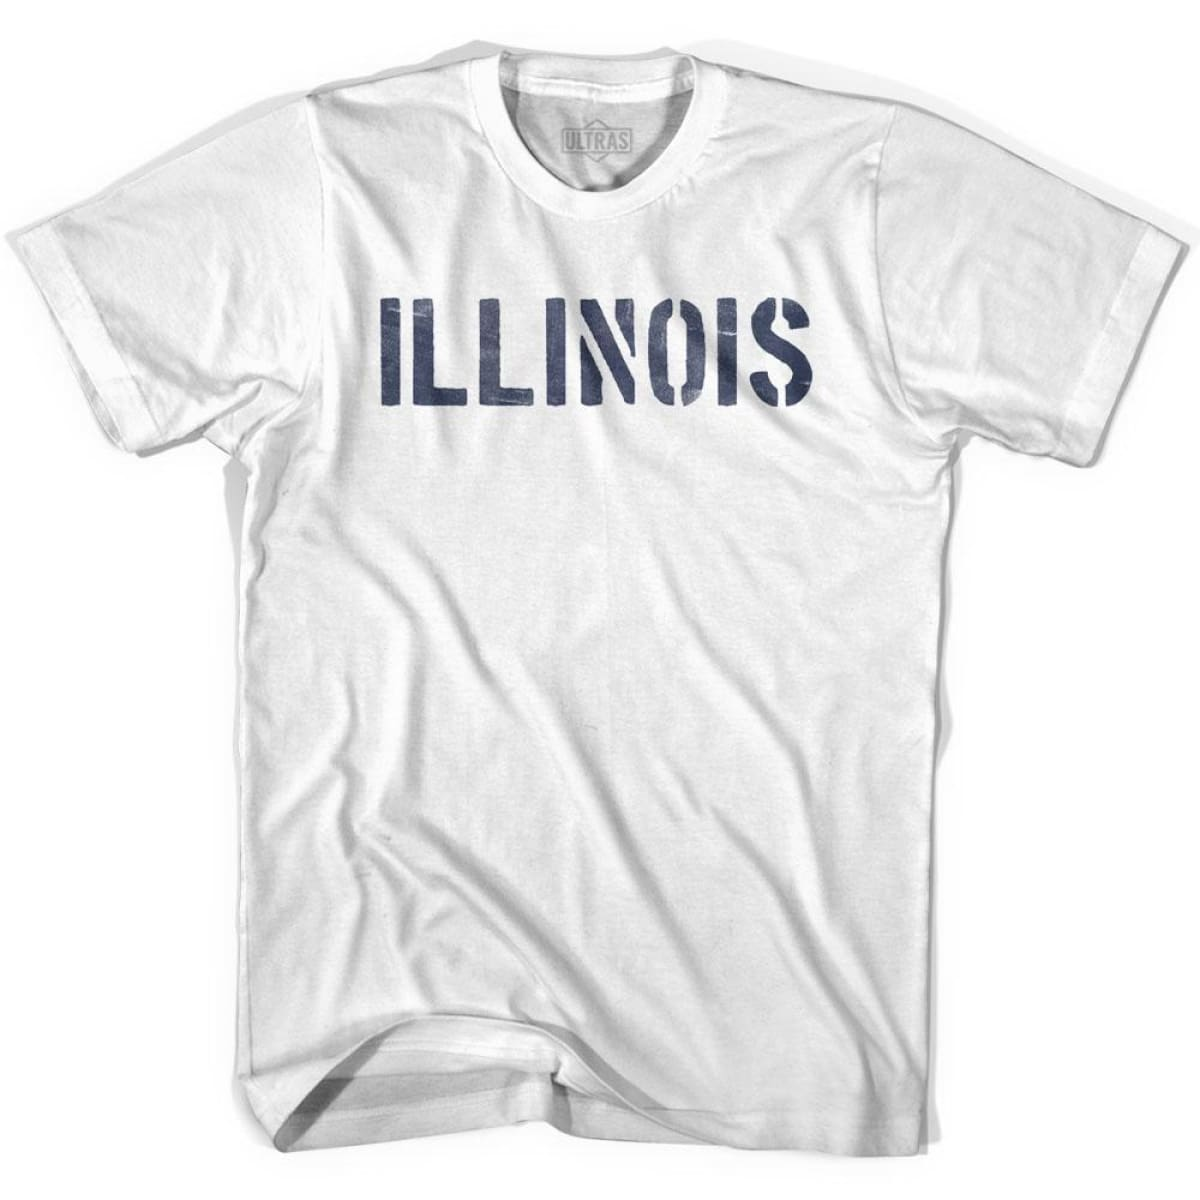 Illinois State Stencil Adult Cotton T-shirt - White / Adult Small - Stencil State